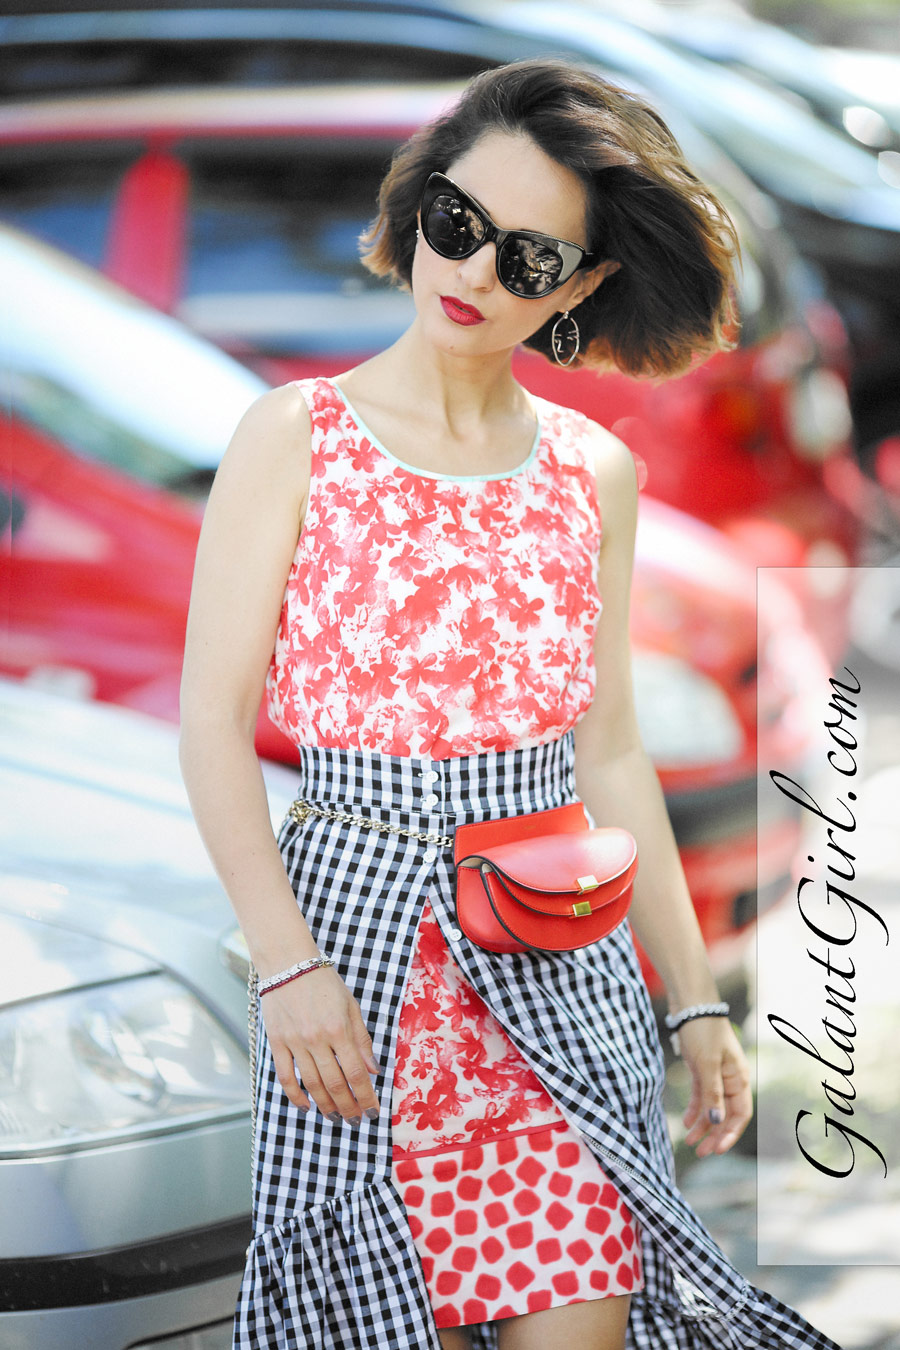 gingham skirt outfits, belt bag outfits, mixing patterns outfit ideas,